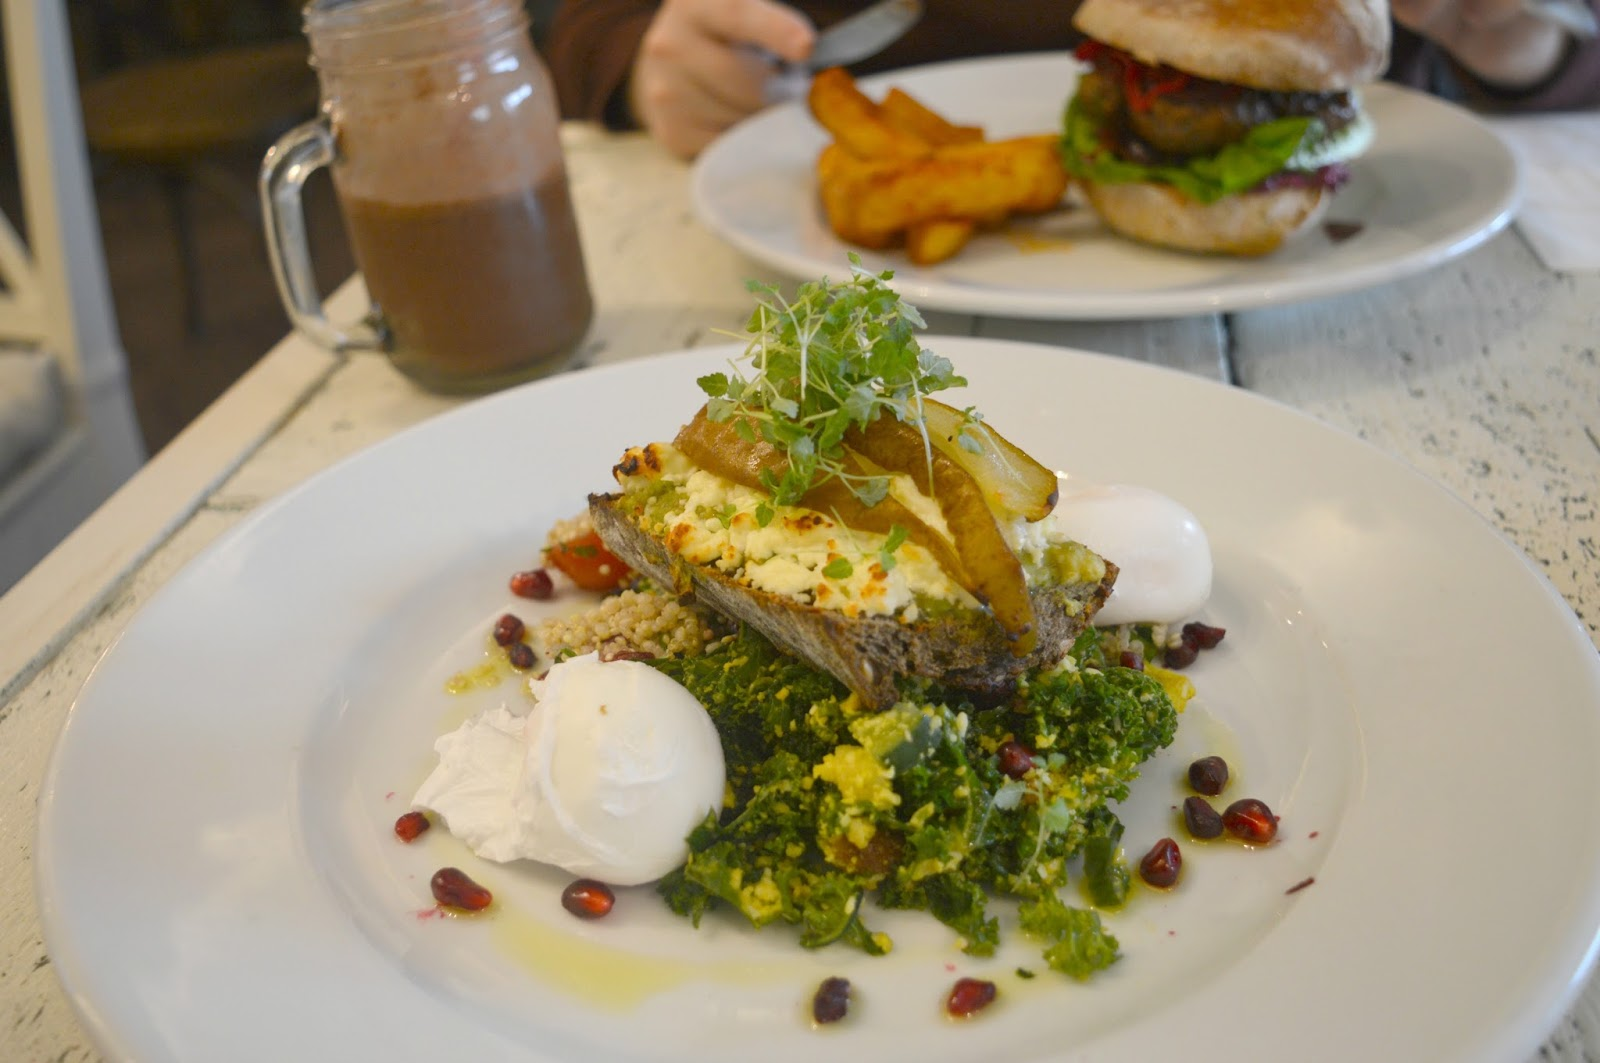 Healthy Places to Eat in Newcastle - Filmore & Union